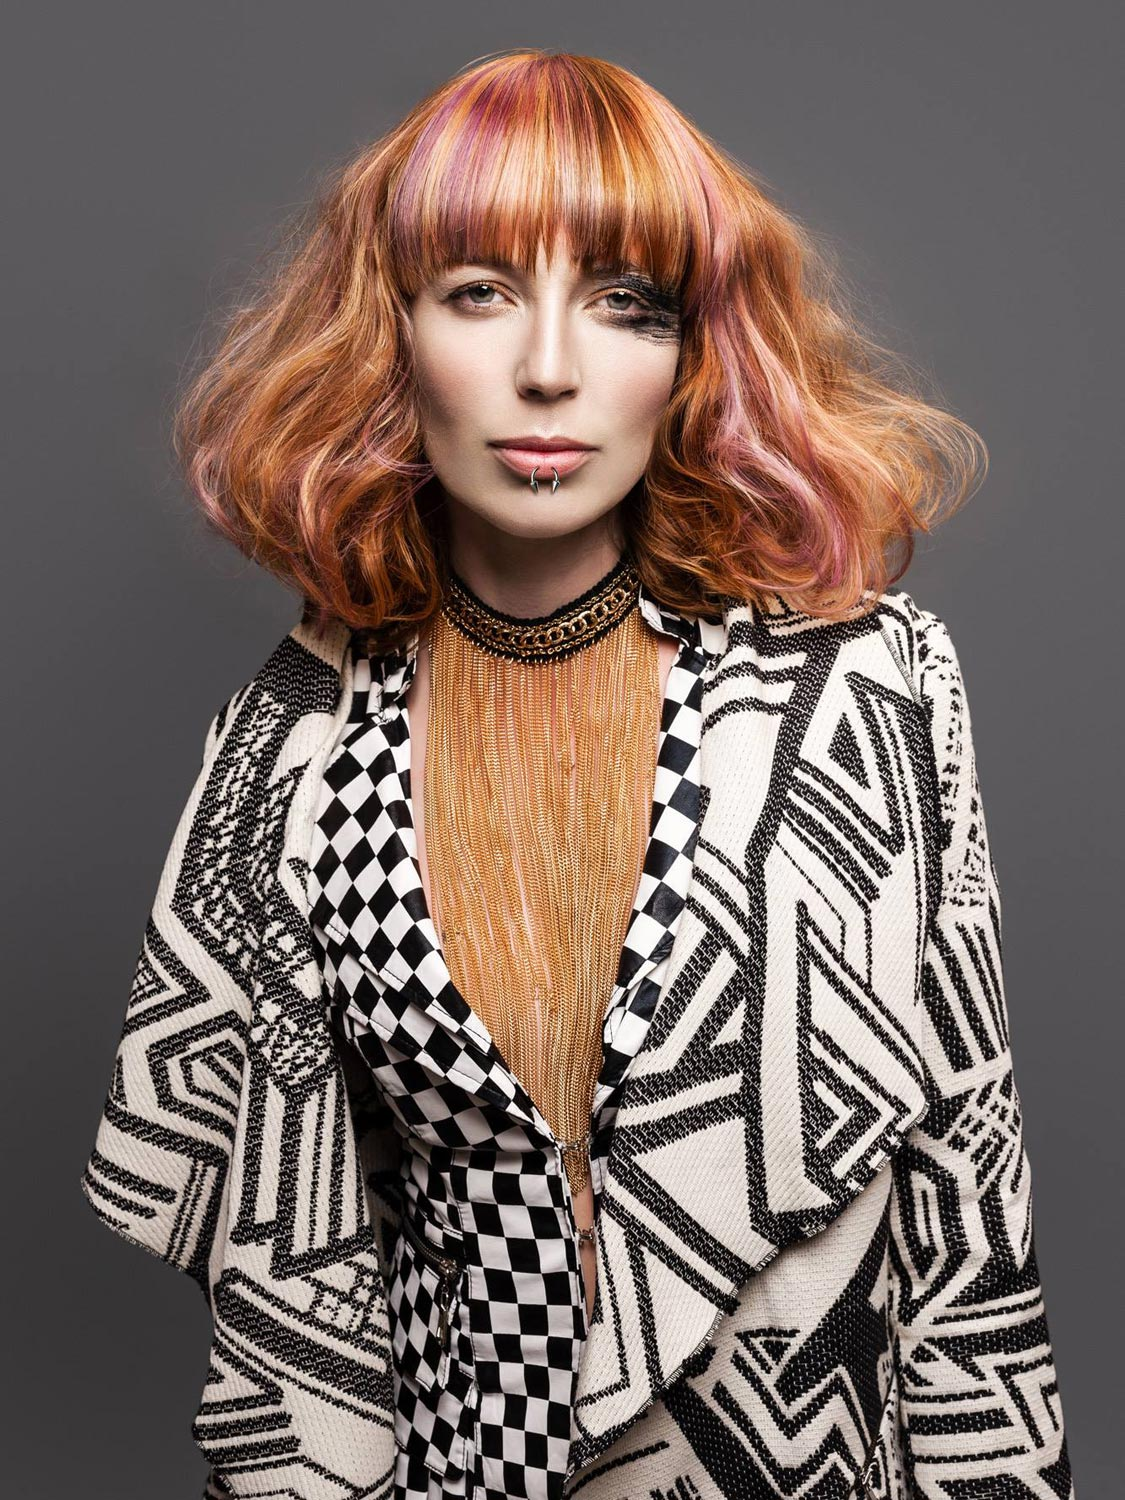 Vladimíra Konopáčová, Salon TOP, Třebíč – nominace v soutěžní kategorii Color Zoom Collection 2015 GLOBAL CREATIVE COLORIST.